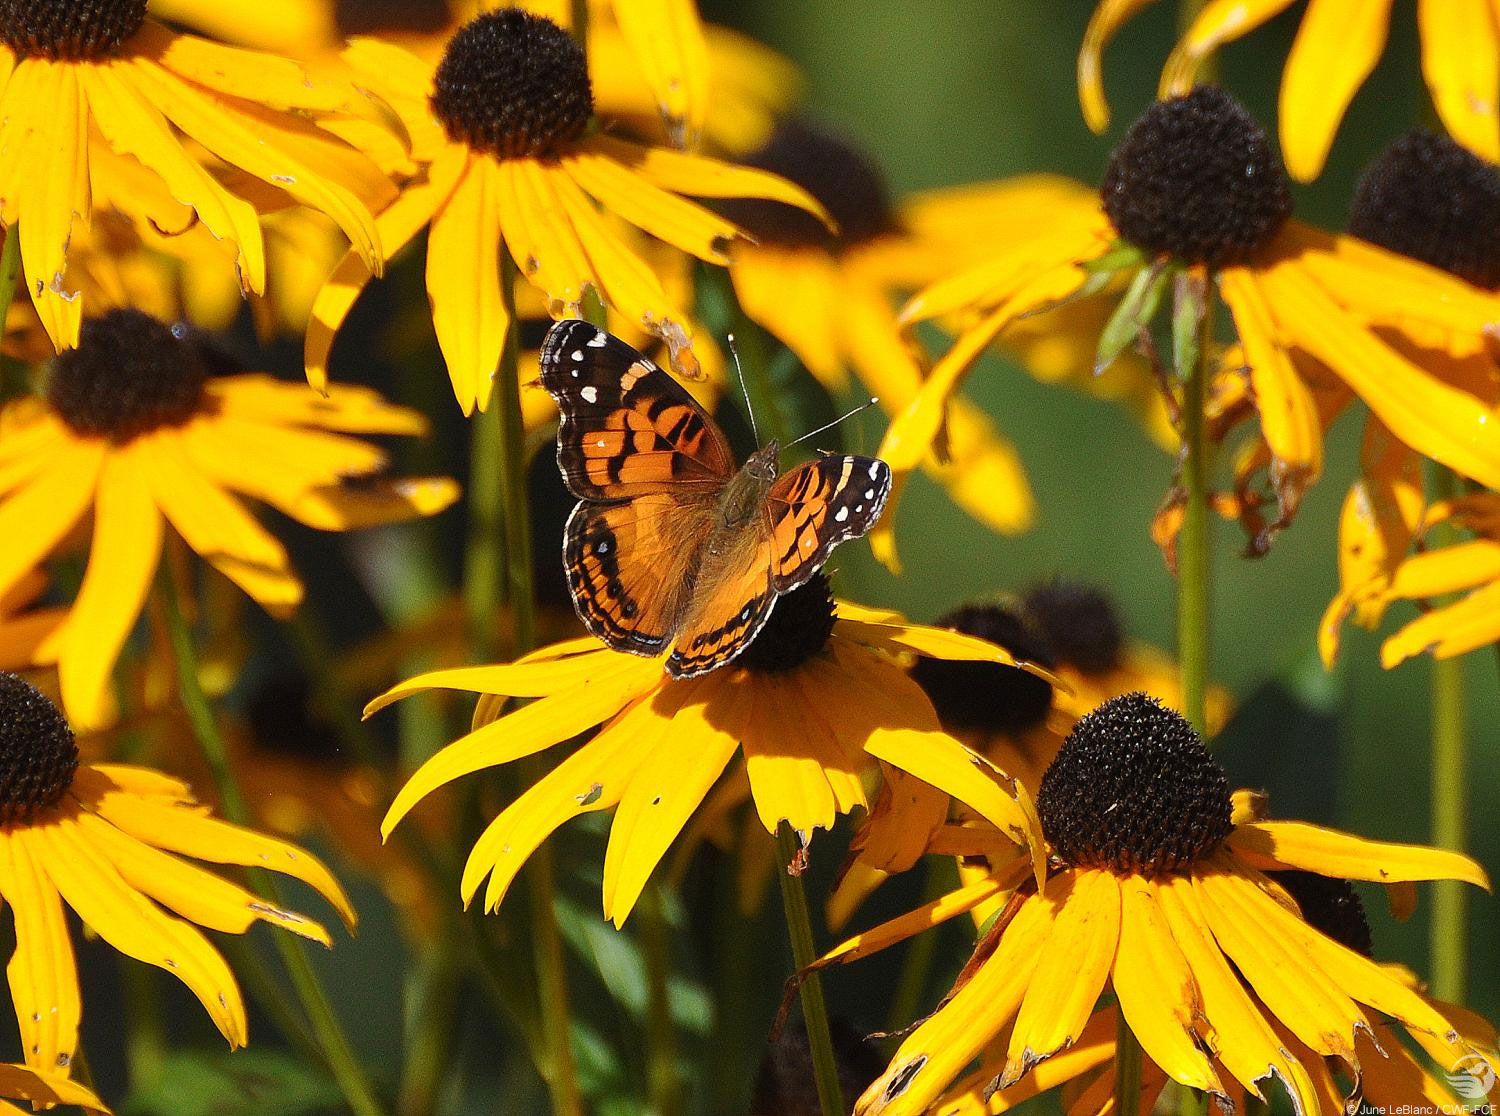 May 2016: Wild About Gardening